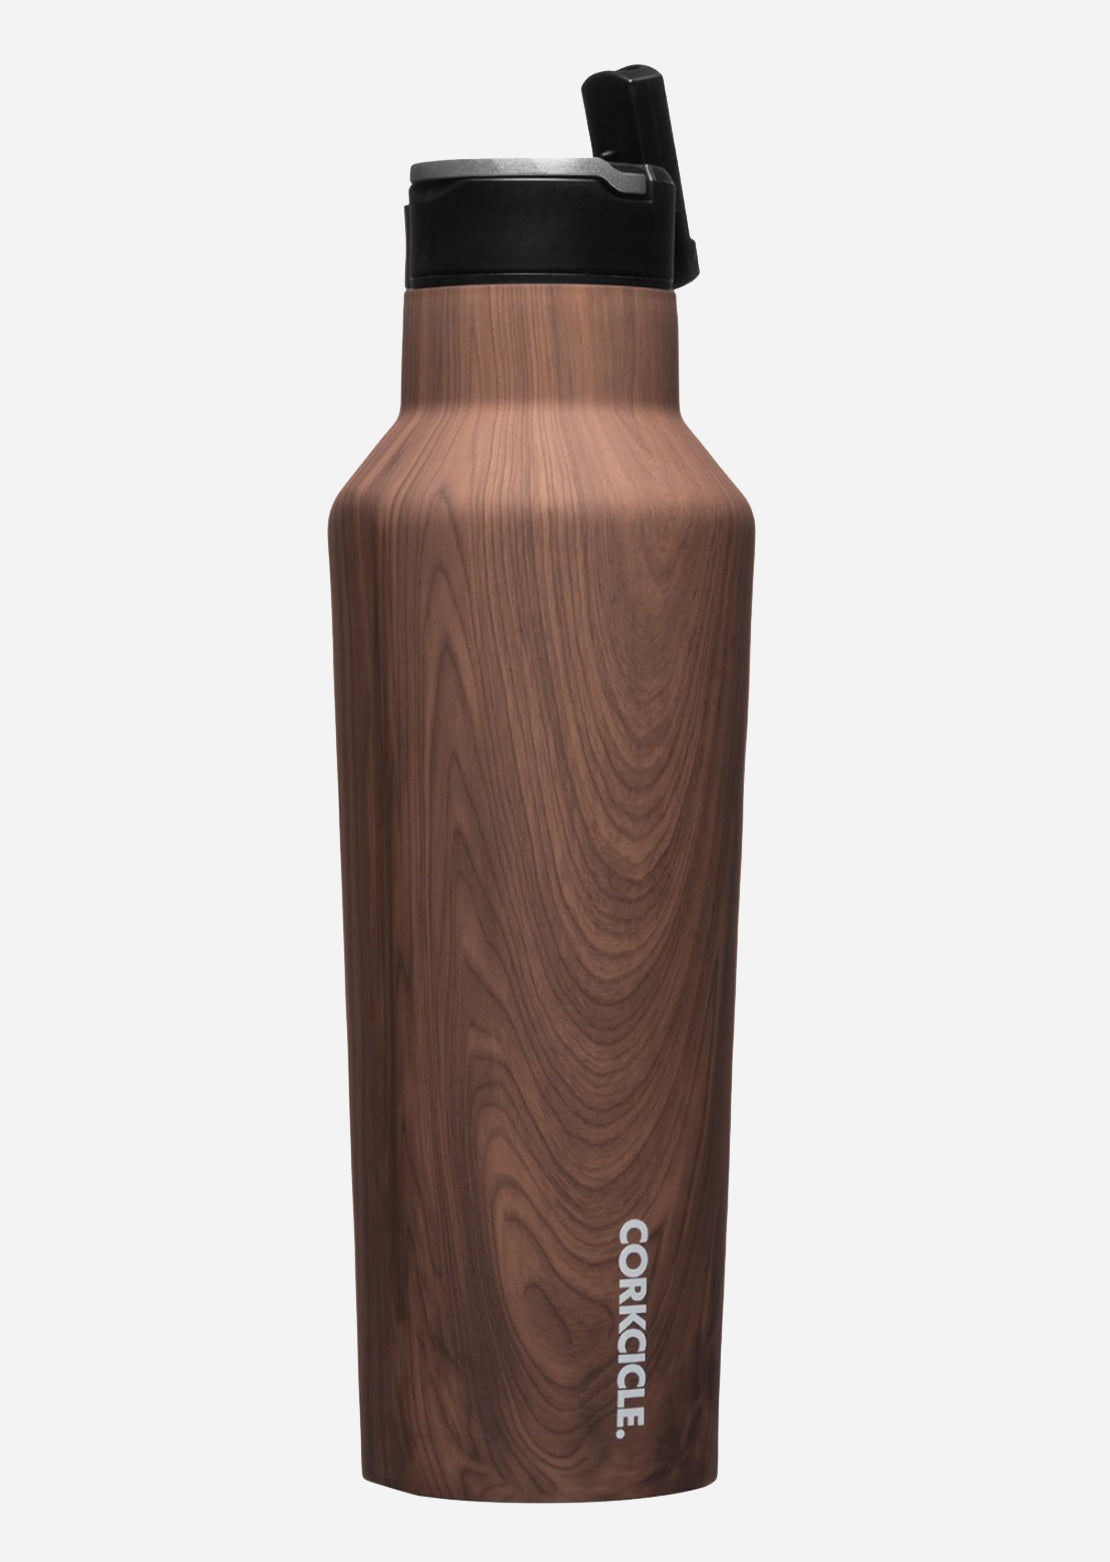 Corkcicle Sport Canteen 20 Oz Bottle Walnut Wood